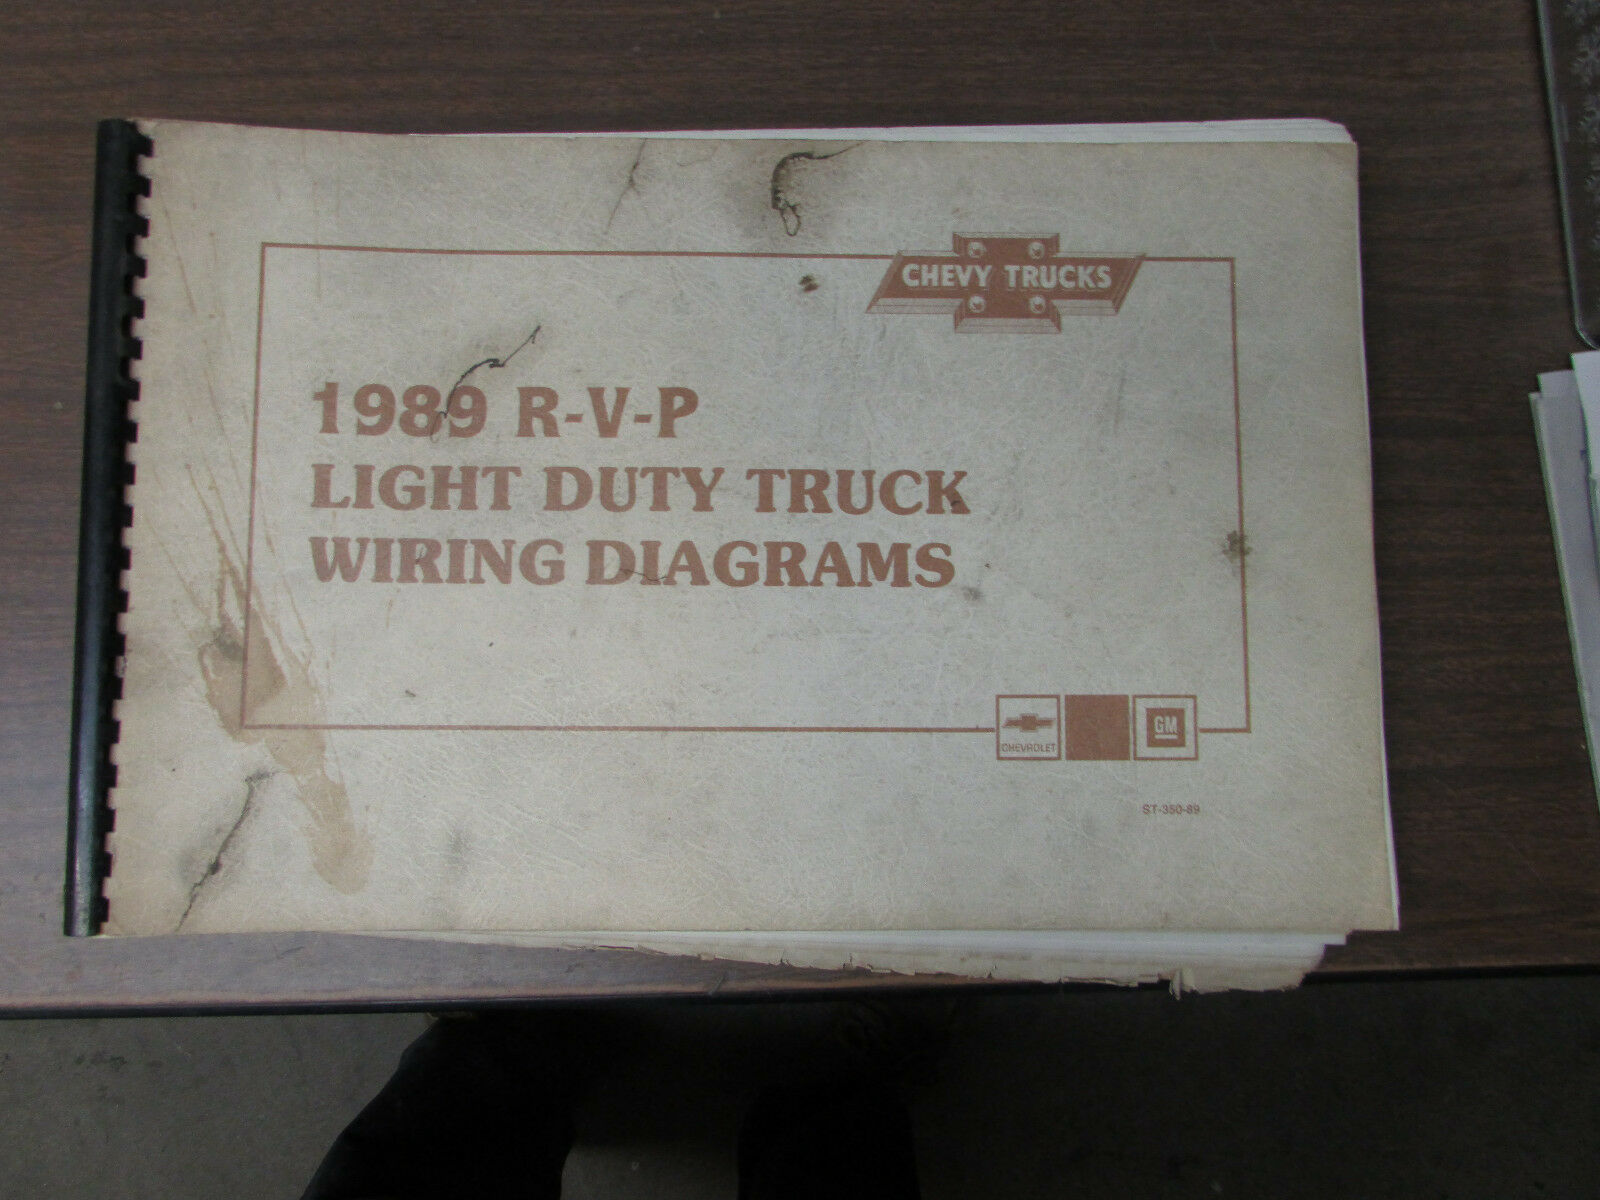 1989 Chevrolet R V P Light Duty Truck Wiring Diagrams Manual Ebay